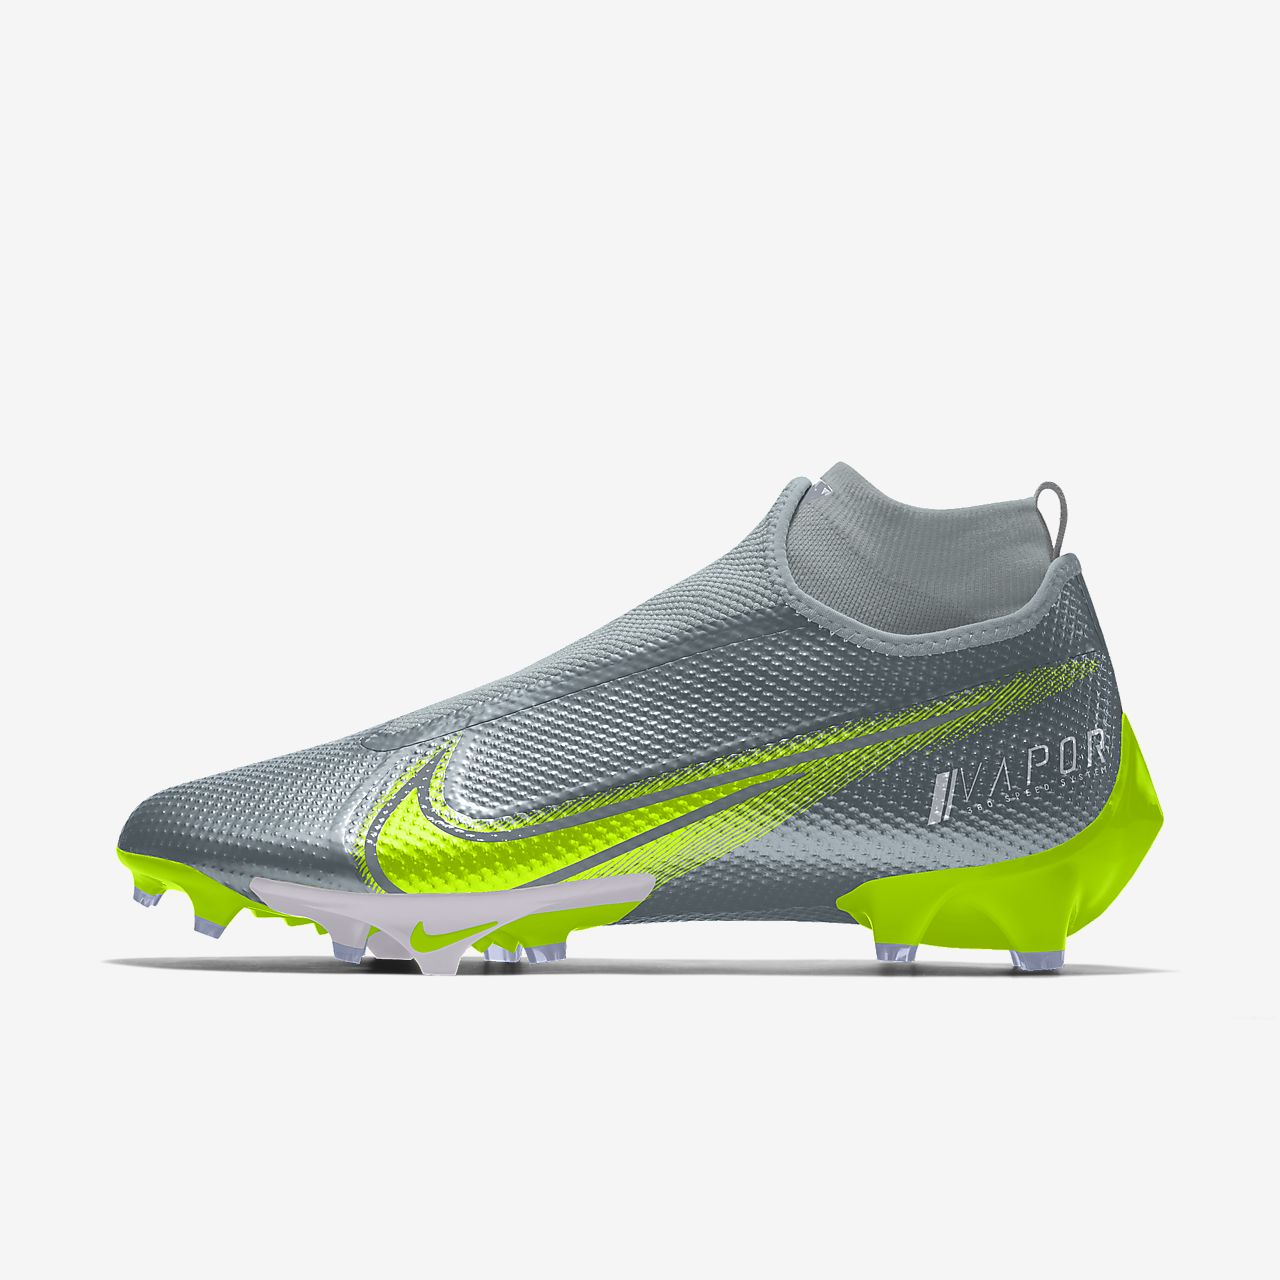 Chaussure de football à crampons personnalisable Nike Vapor Edge Pro 360 By You